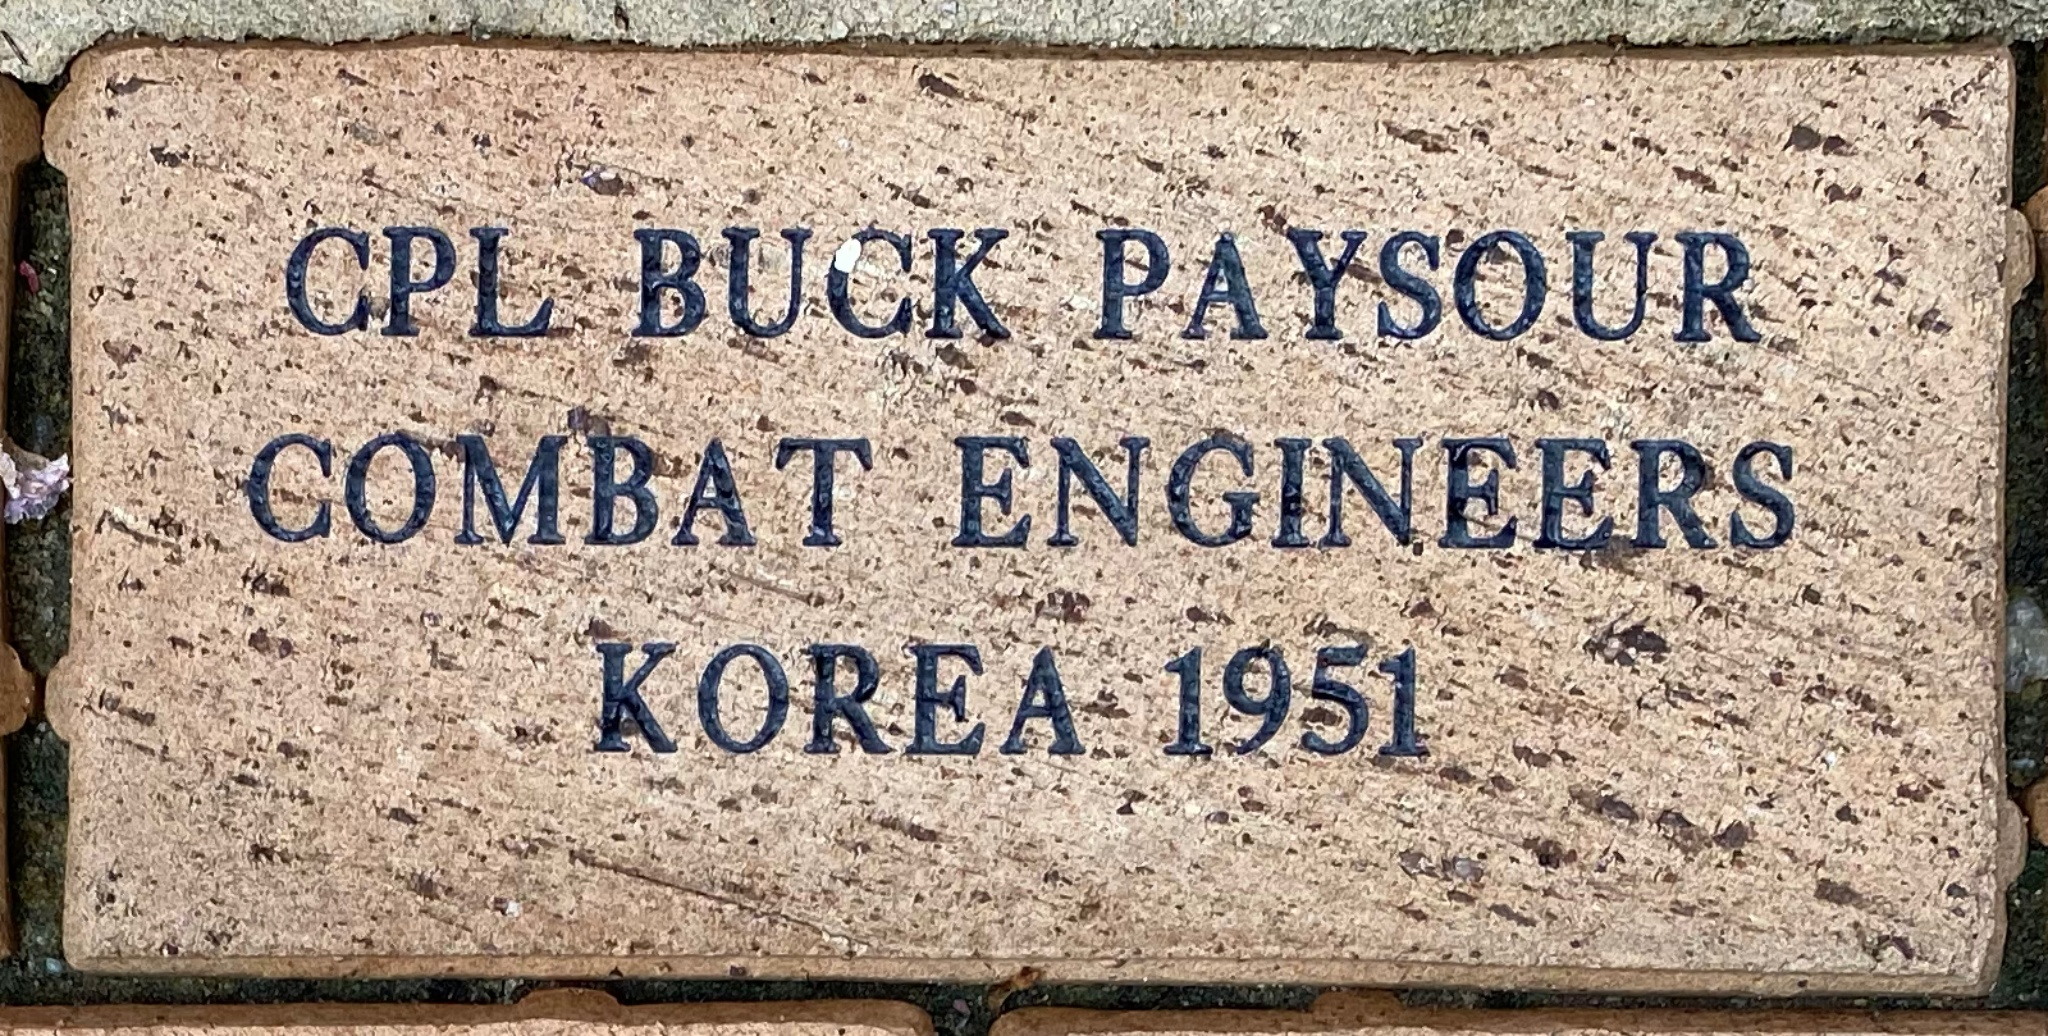 CPL BUCK PAYSOUR COMBAT ENGINEERS KOREA 1951